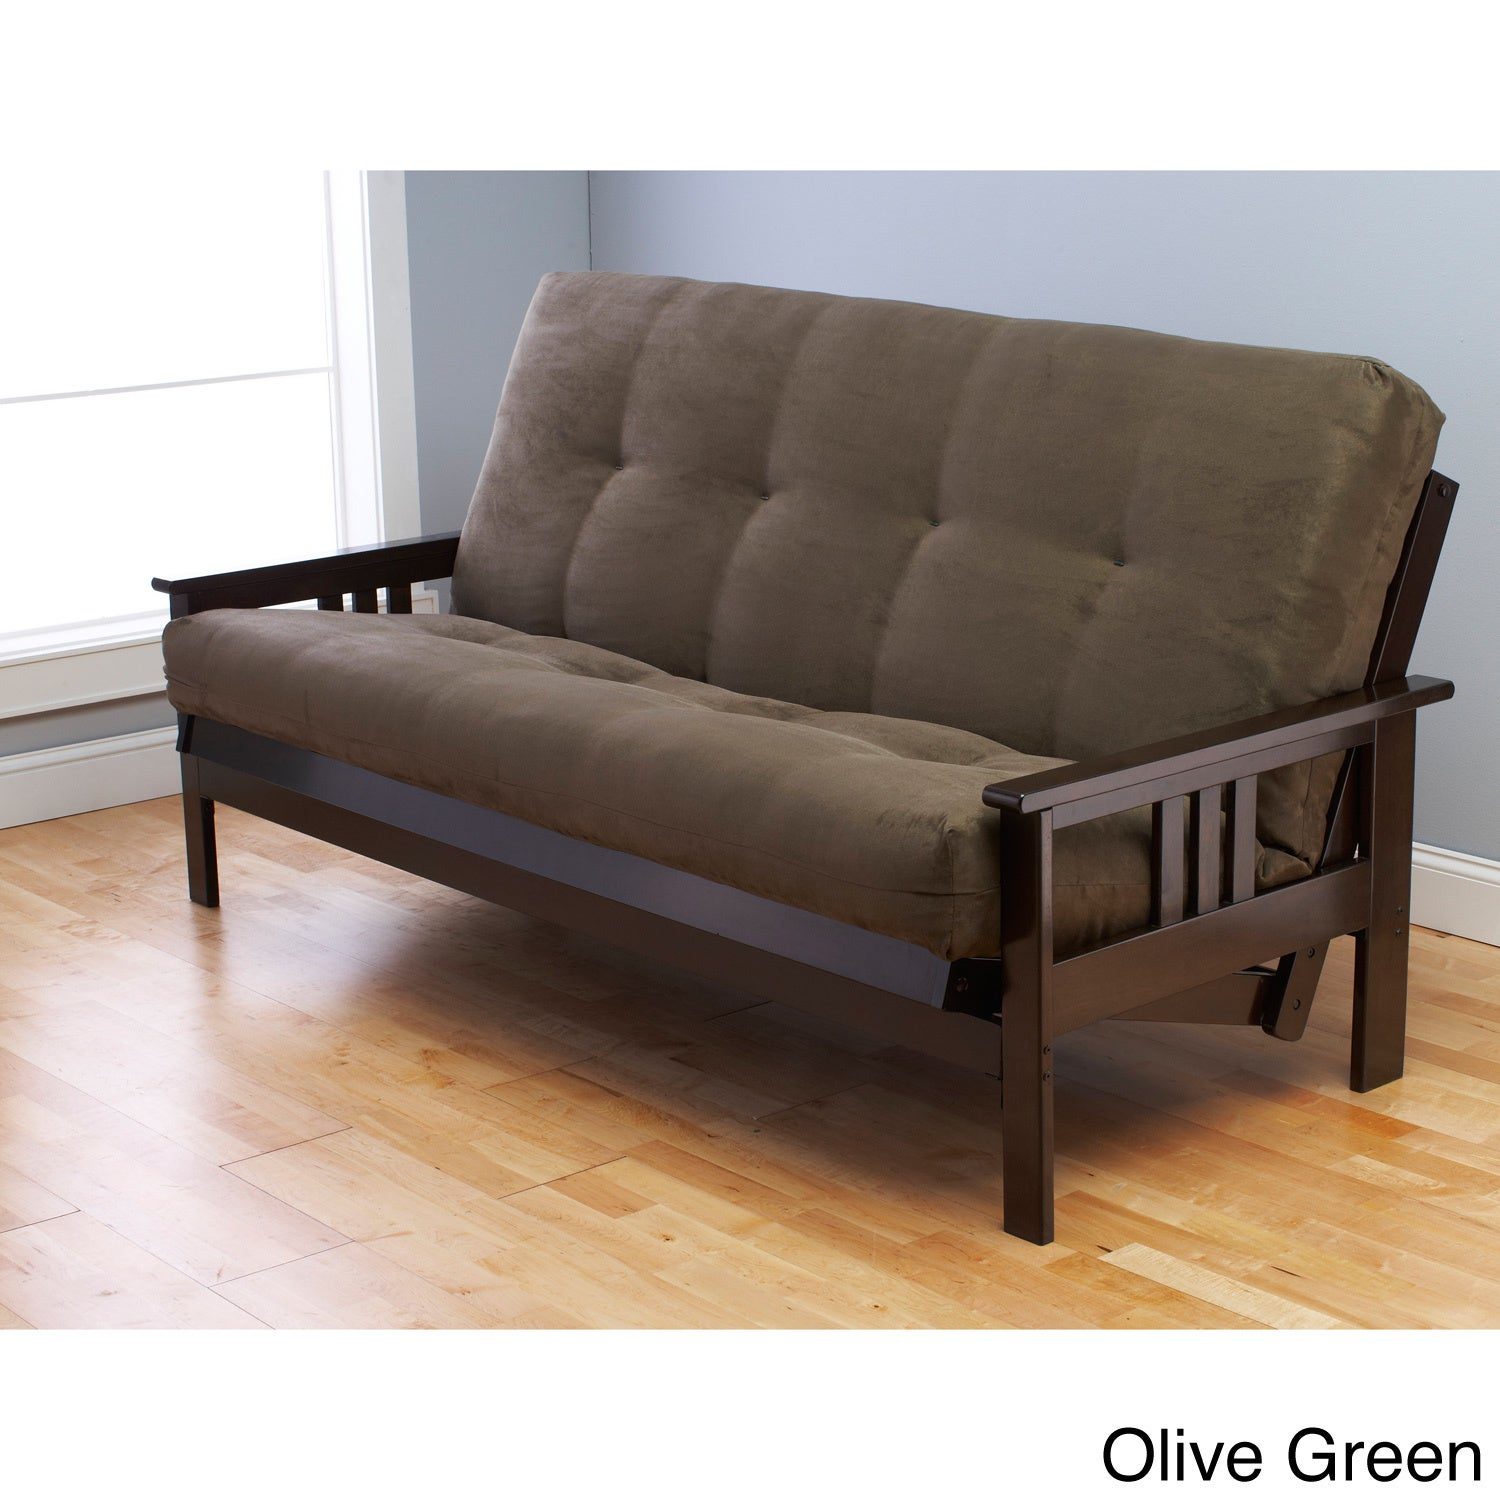 queen size beds futons contemporary sofa futon san sunnyvale clara and jose bed store furniture santa black